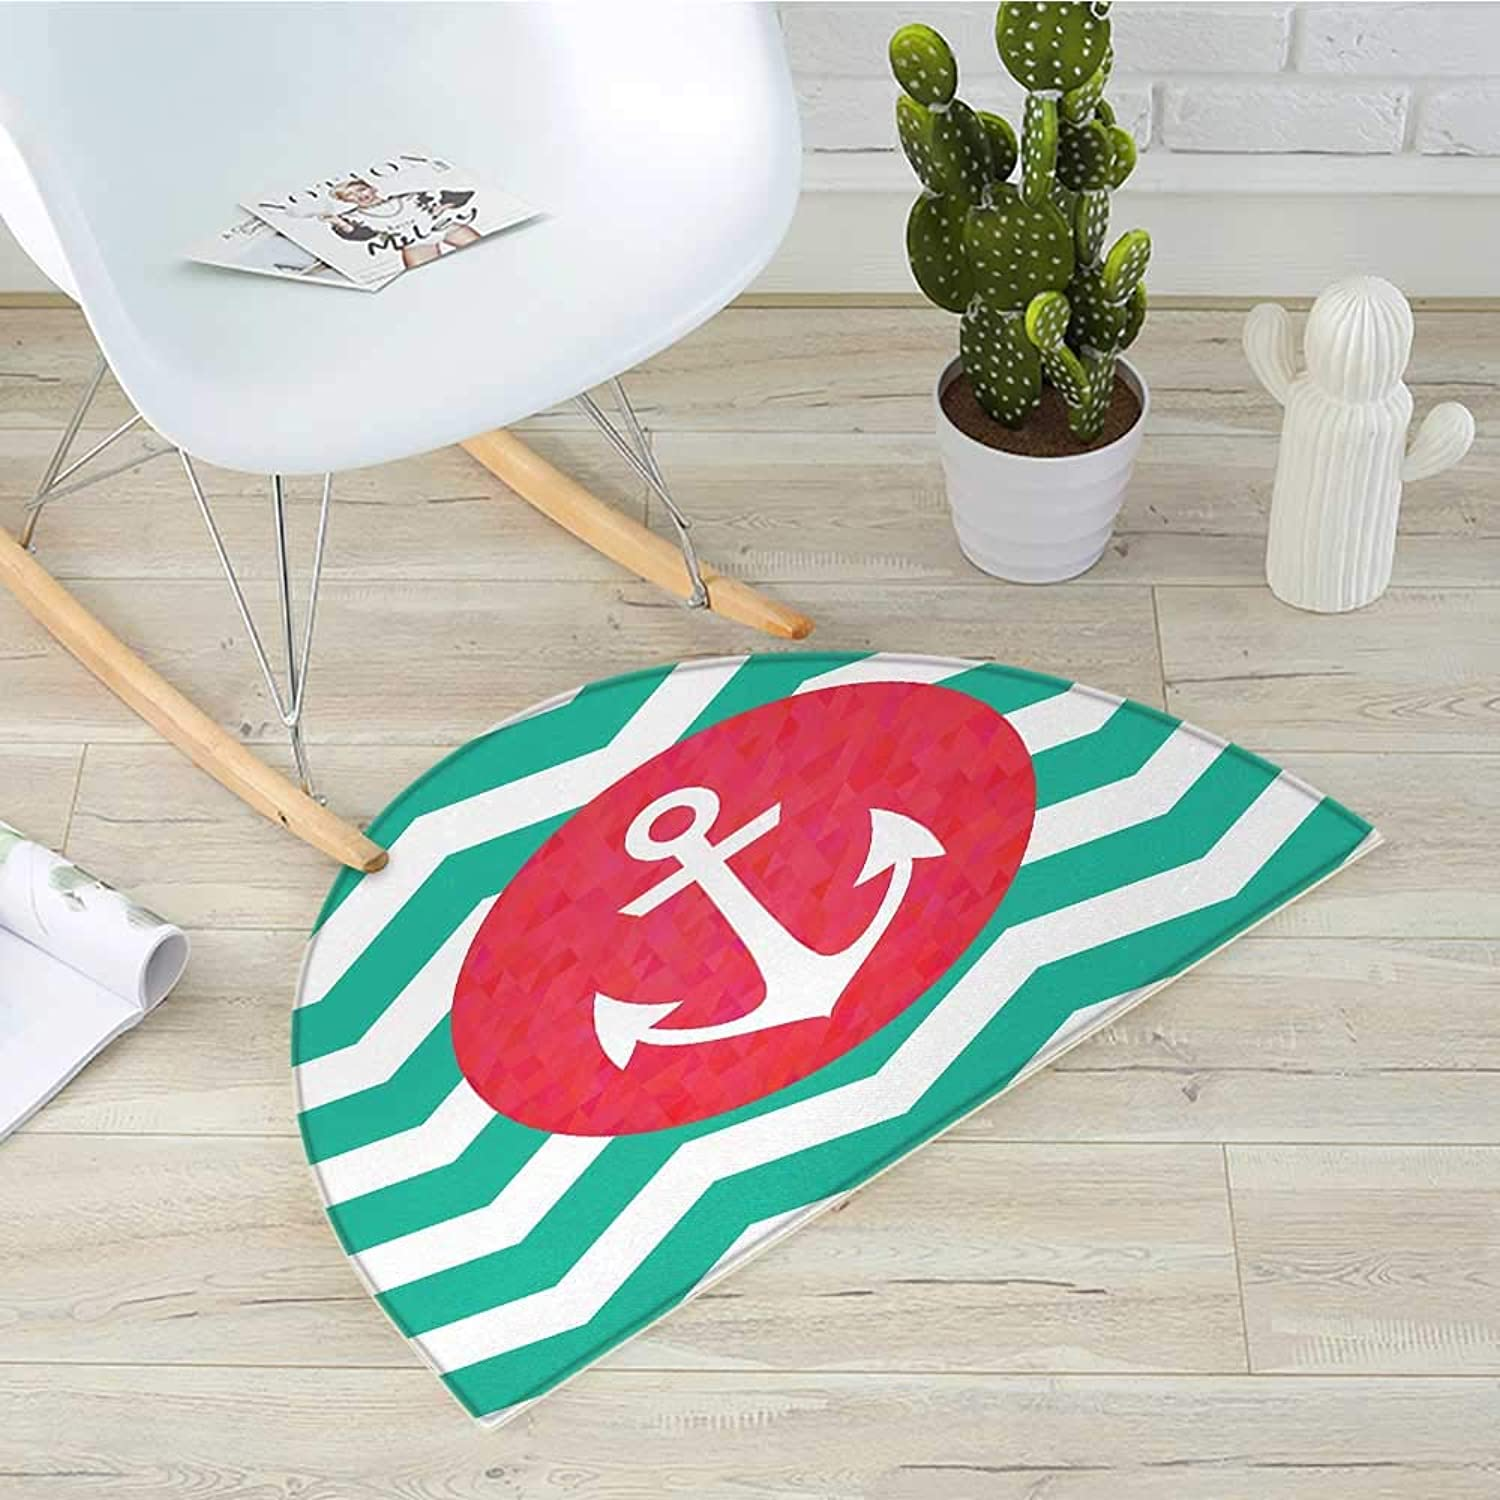 Anchor Semicircular CushionPattern of Anchors and Waves Stripes Classic Old Style Sailing Boat Swimming Entry Door Mat H 31.5  xD 47.2  Red Jade Green